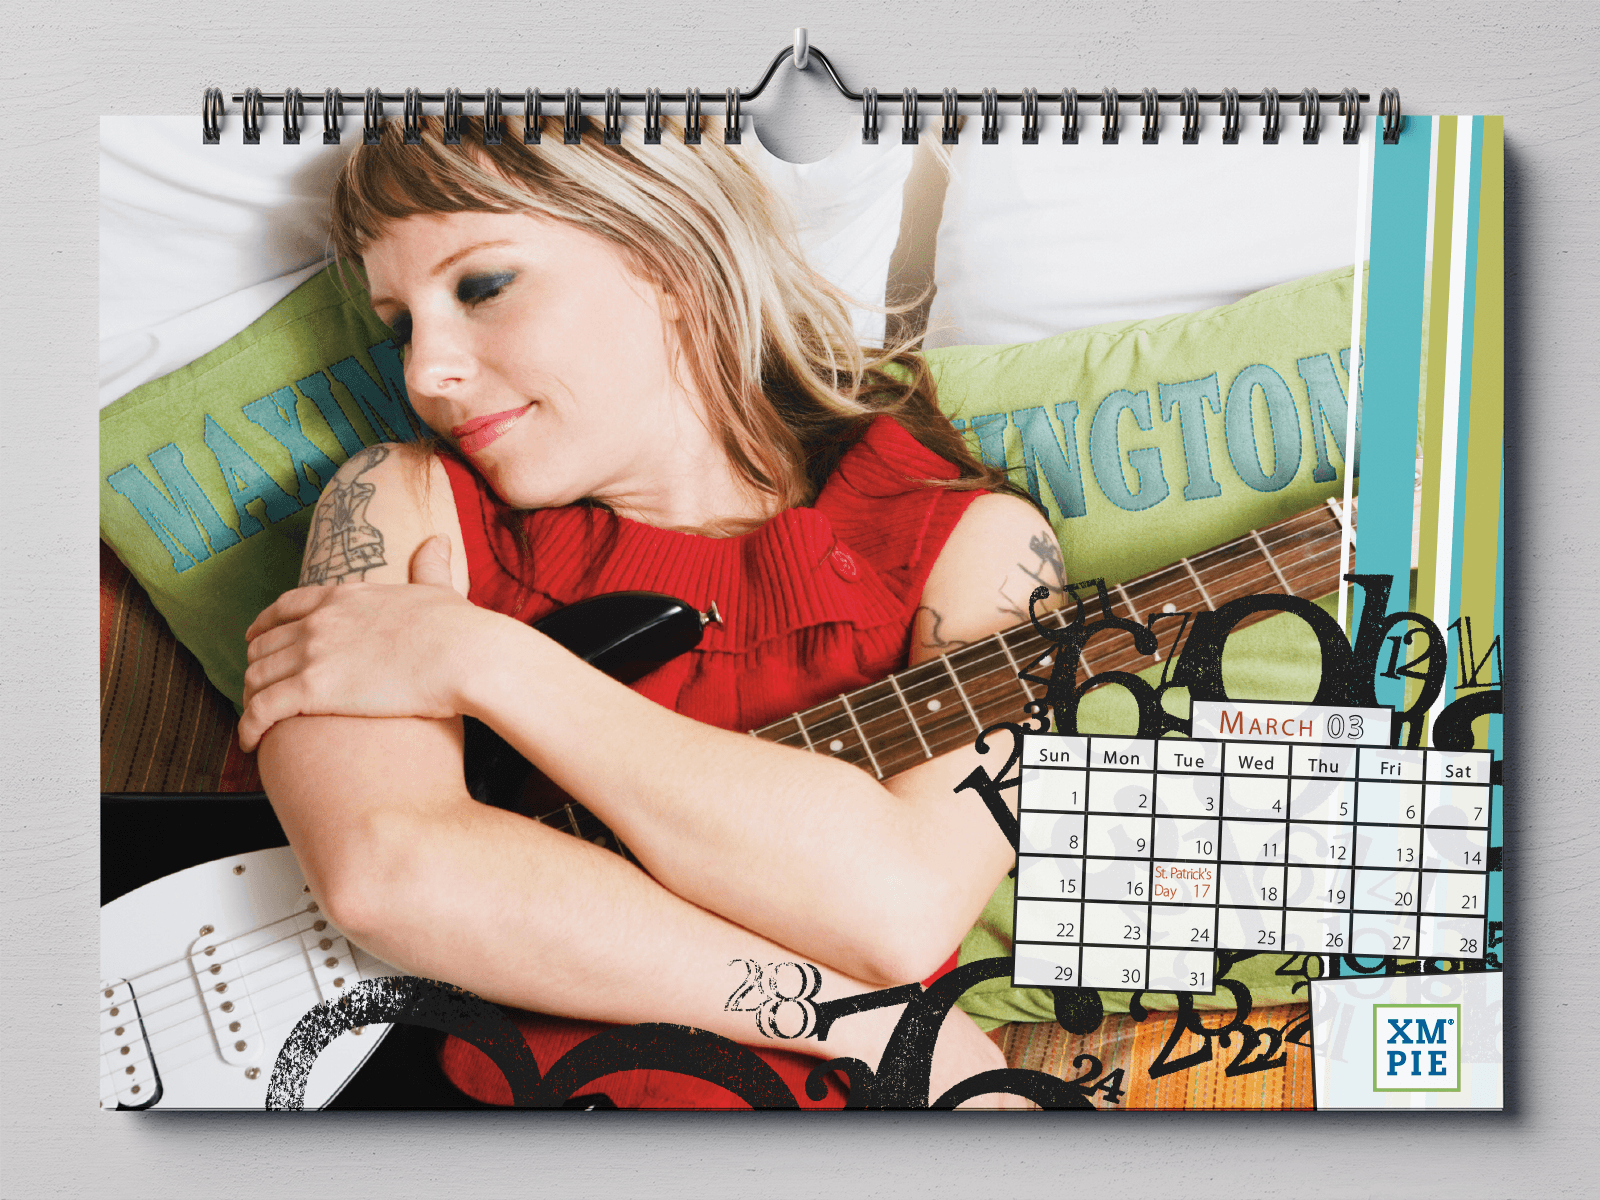 http://bigeyes.co.il/wp-content/uploads/2019/07/college-calendar-4.png